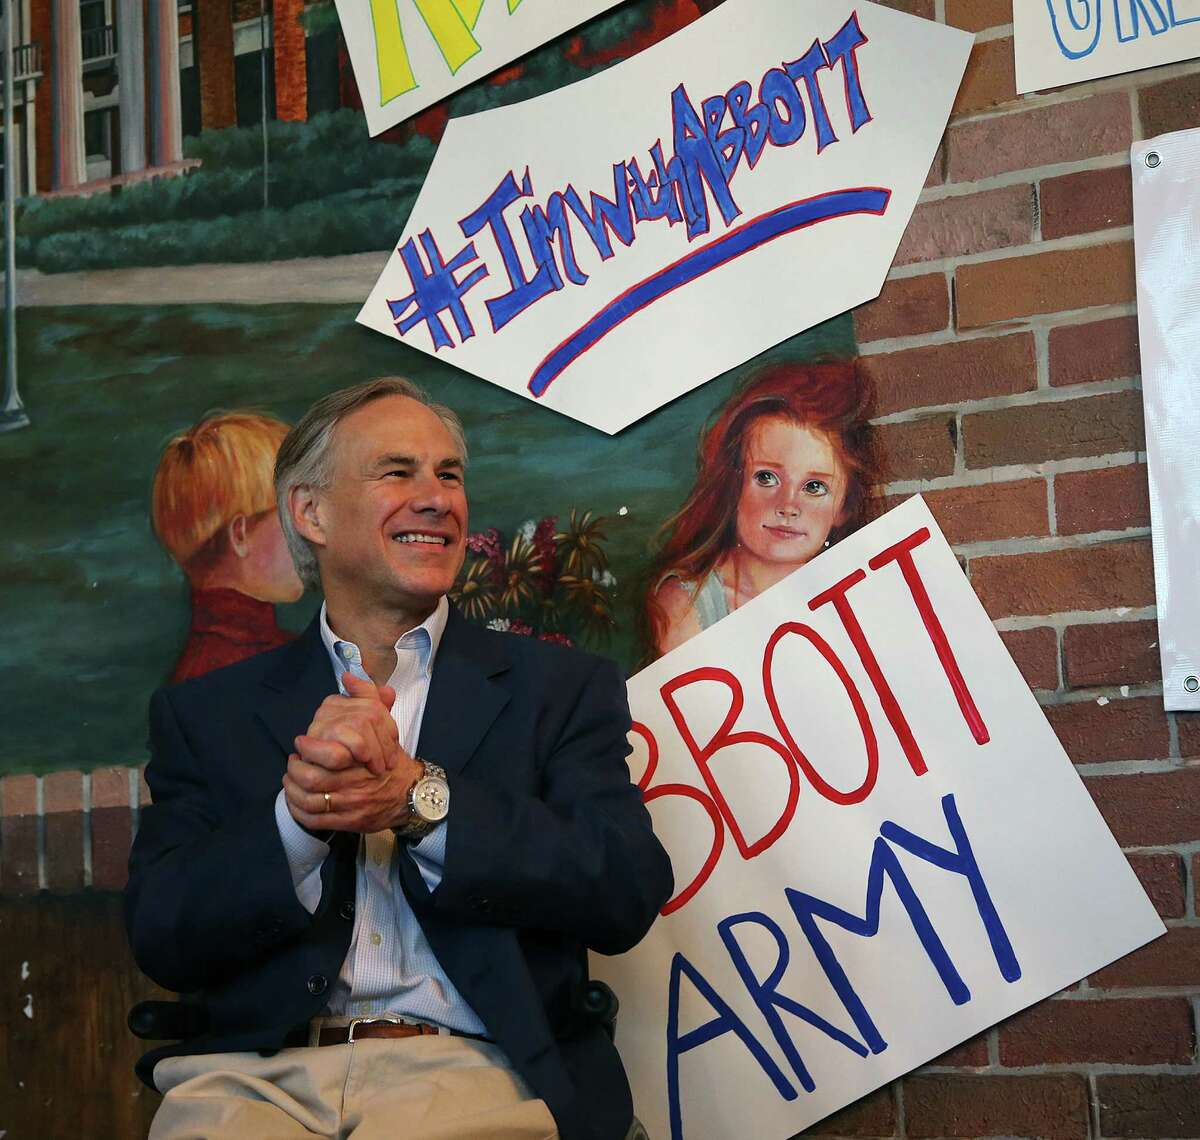 Texas Attorney General Greg Abbott and Republican candidate for governor, is introduced to supporters at a local restaurant Friday, Feb. 28, 2014, in Waco, Texas. (AP Photo/Waco Tribune Herald, Rod Aydelotte)